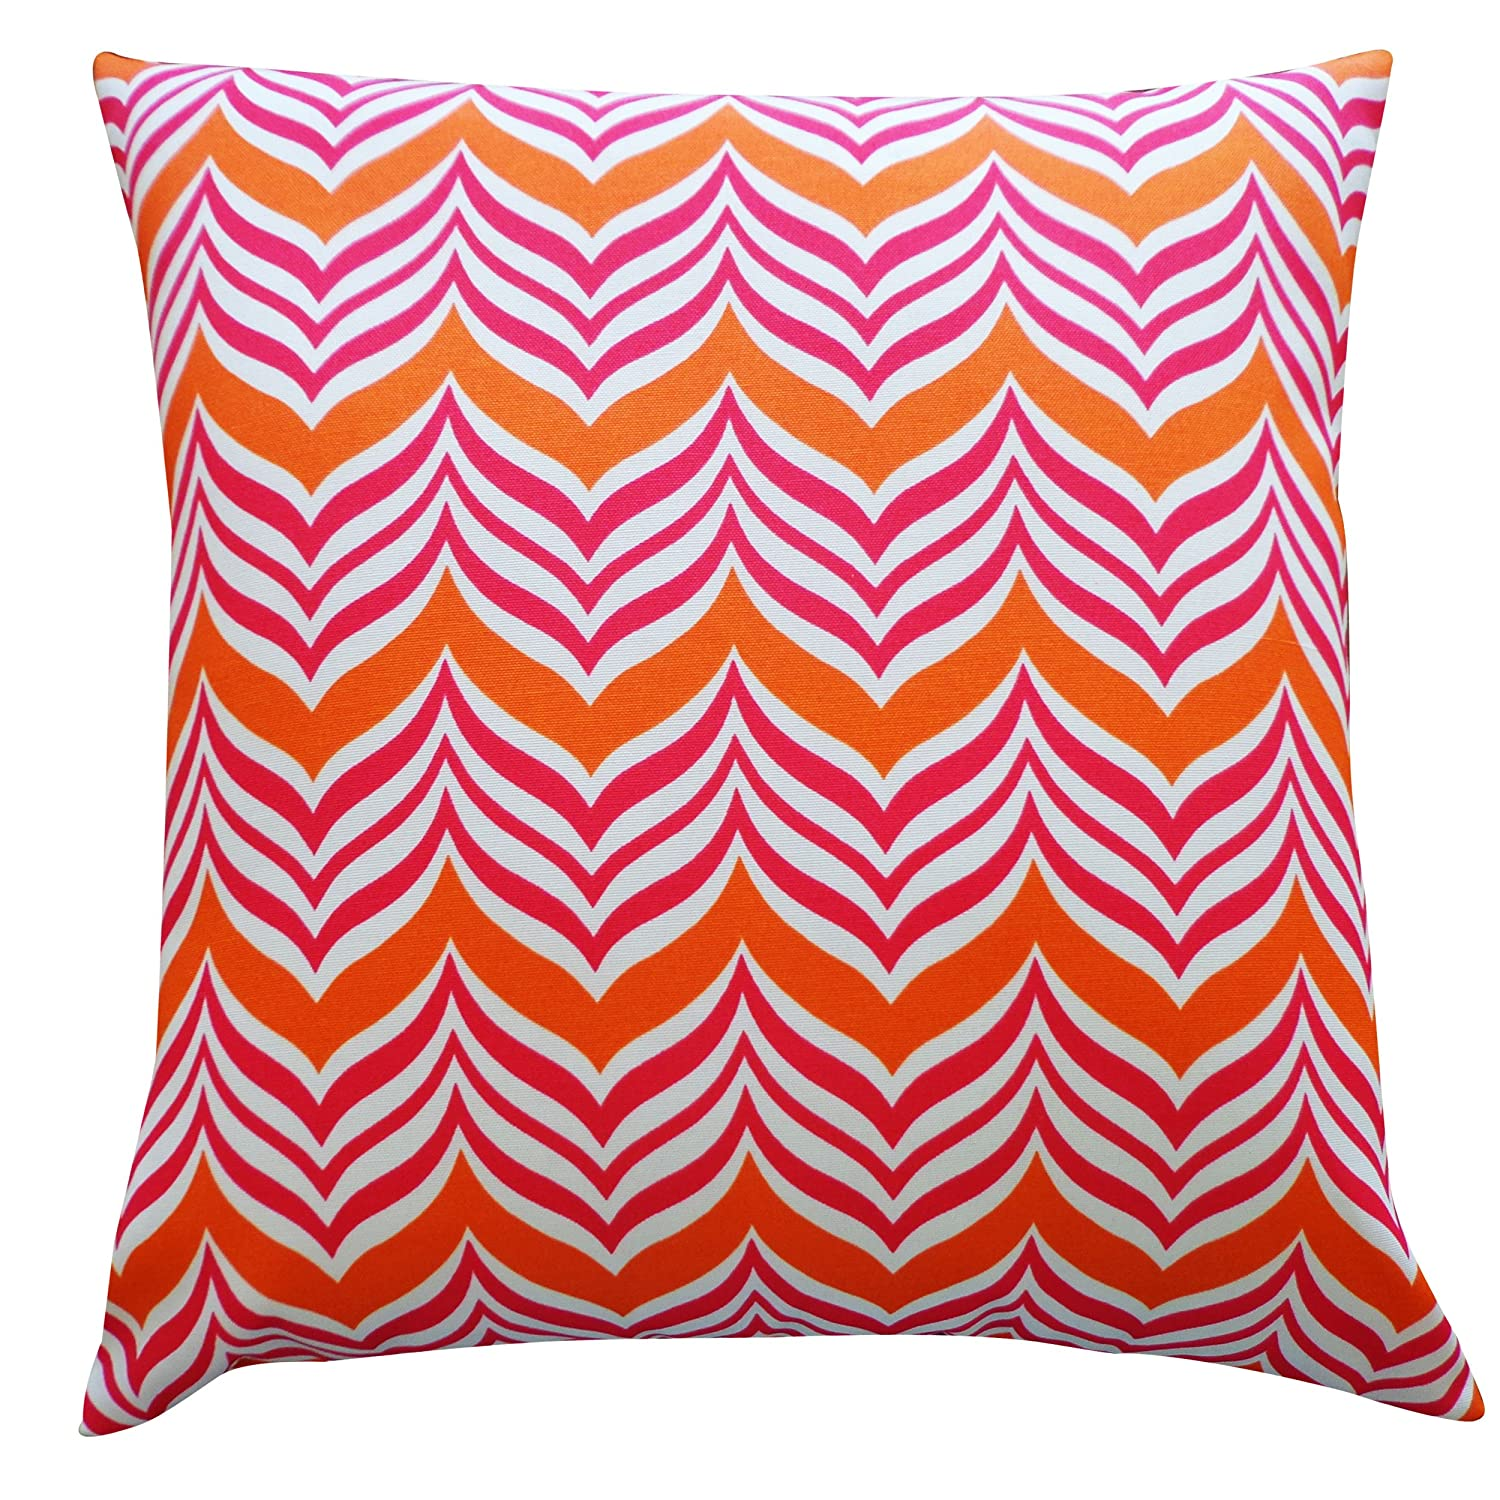 Jiti Mosque Outdoor Polyester Throw Pillow, 12 by 20-Inch, Pink/Orange